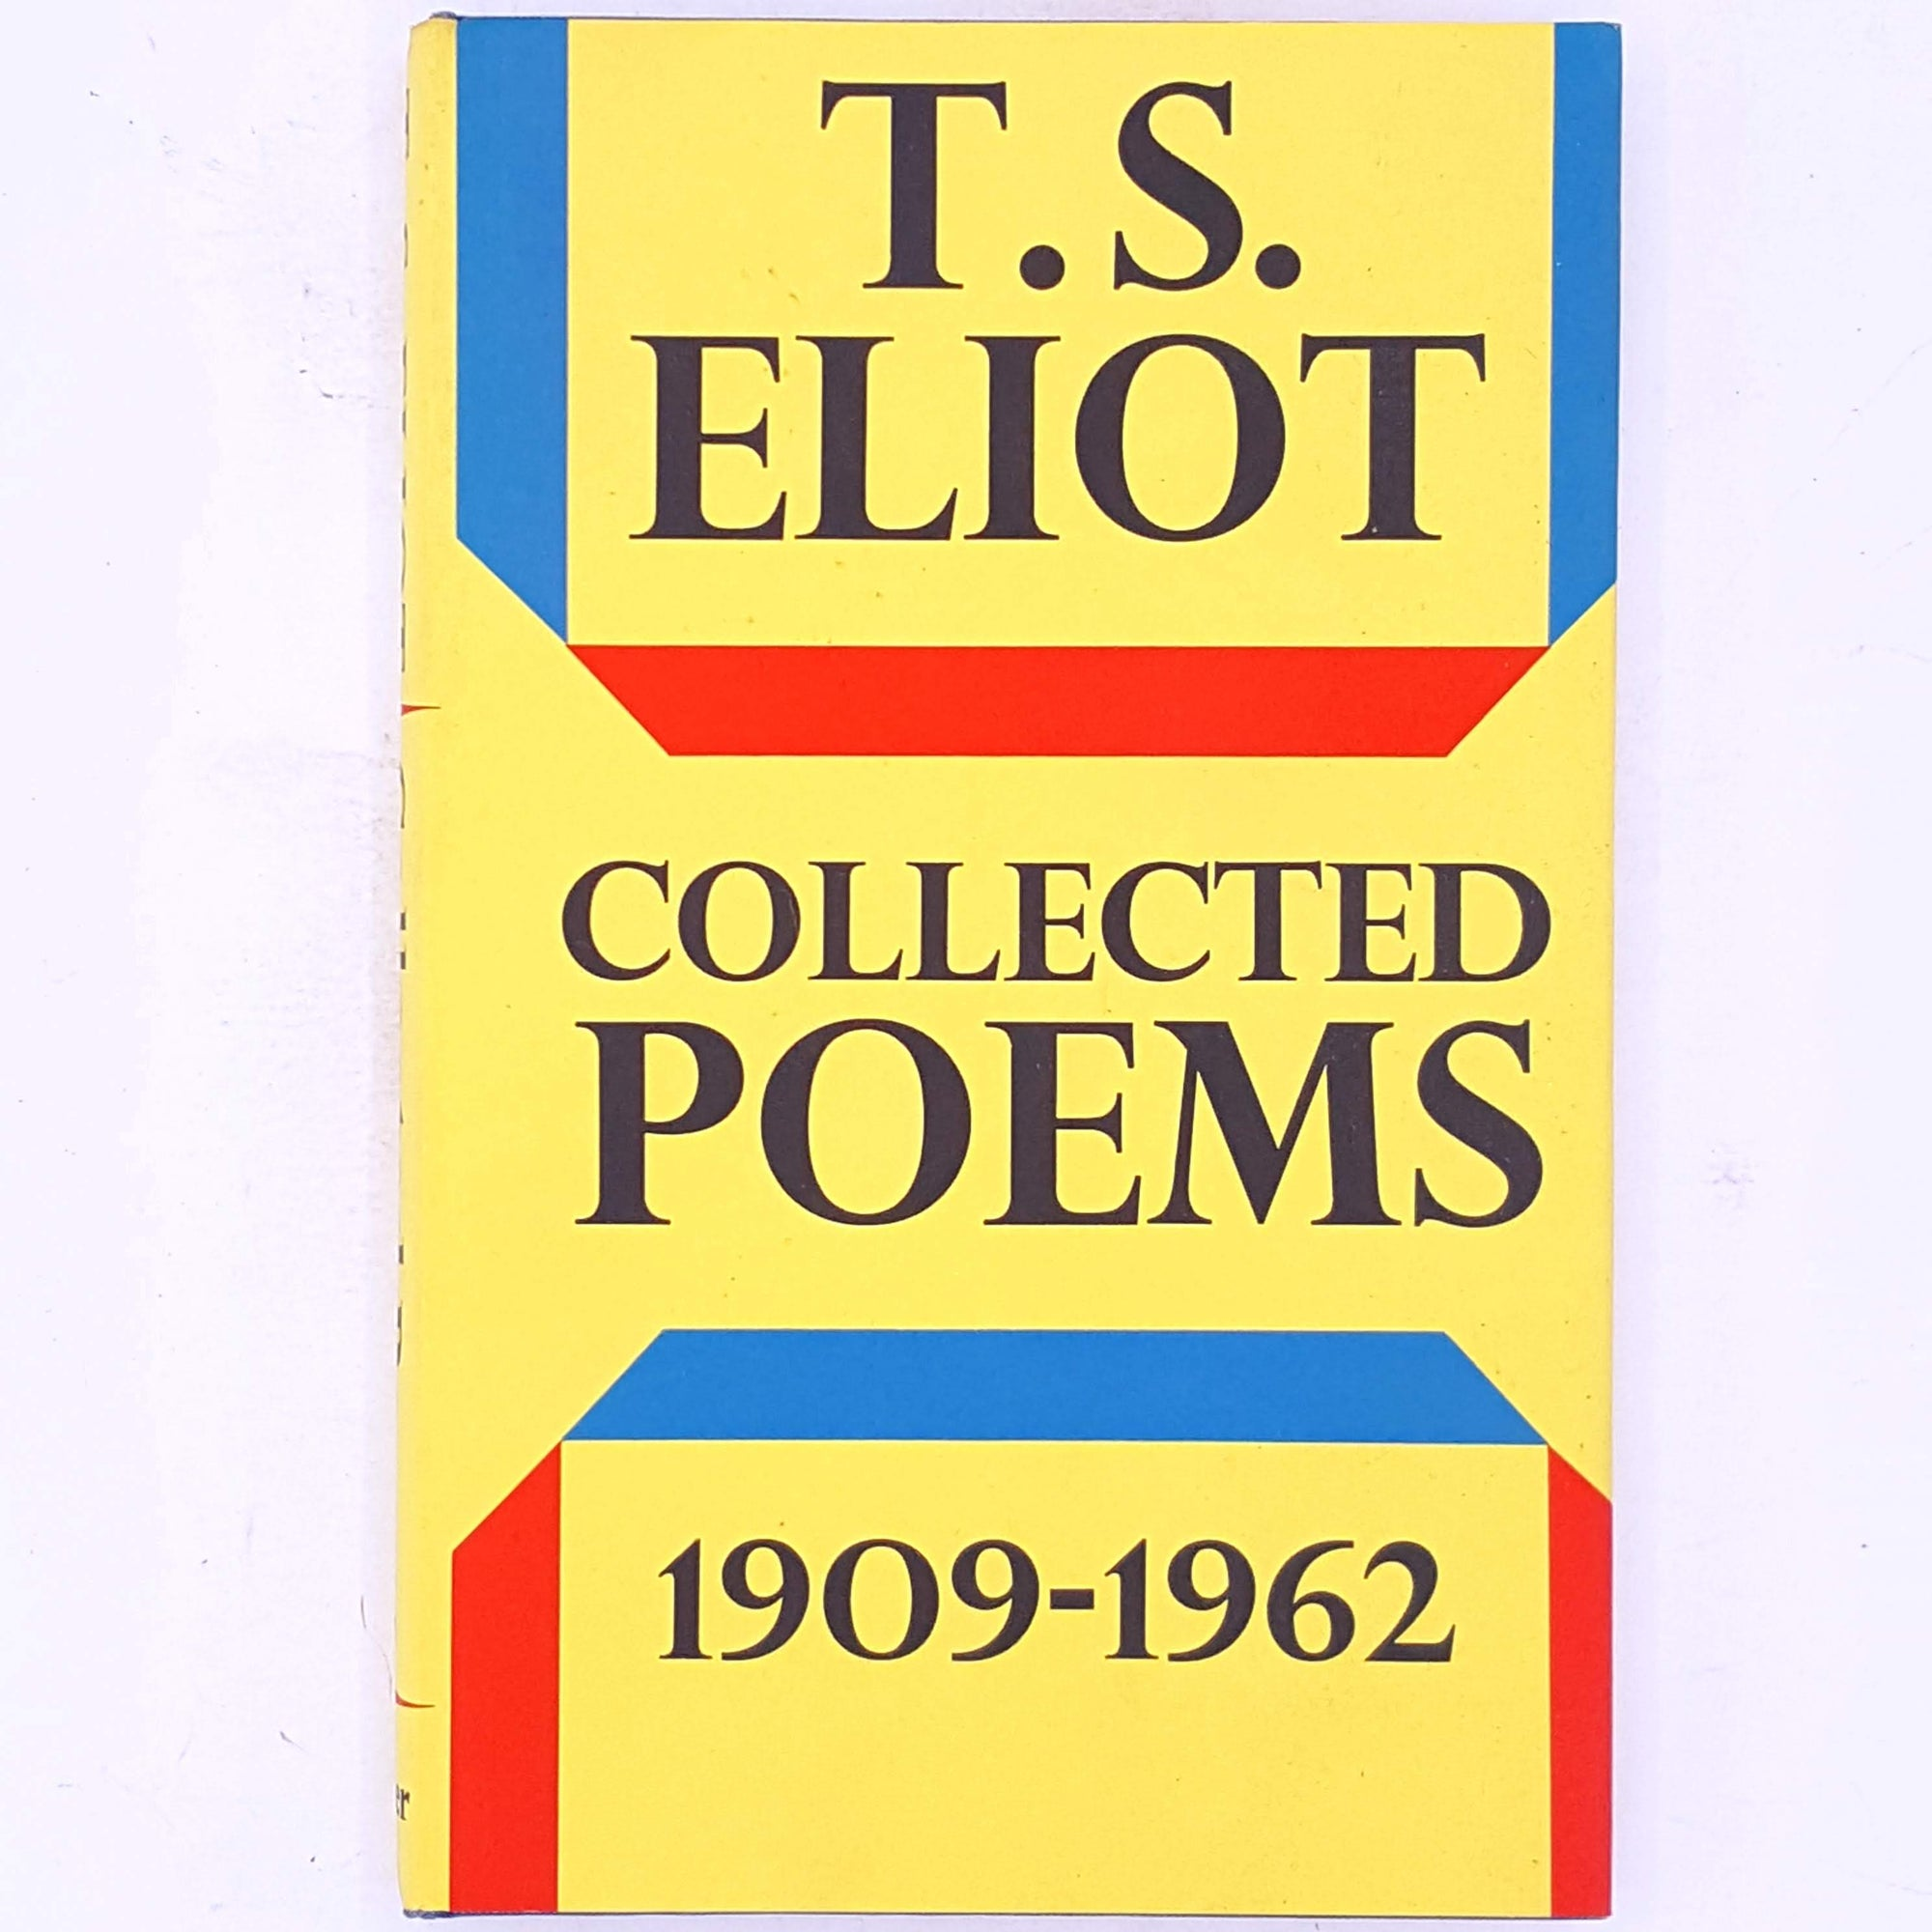 T.S. Eliot, Collected Poems 1909-1962